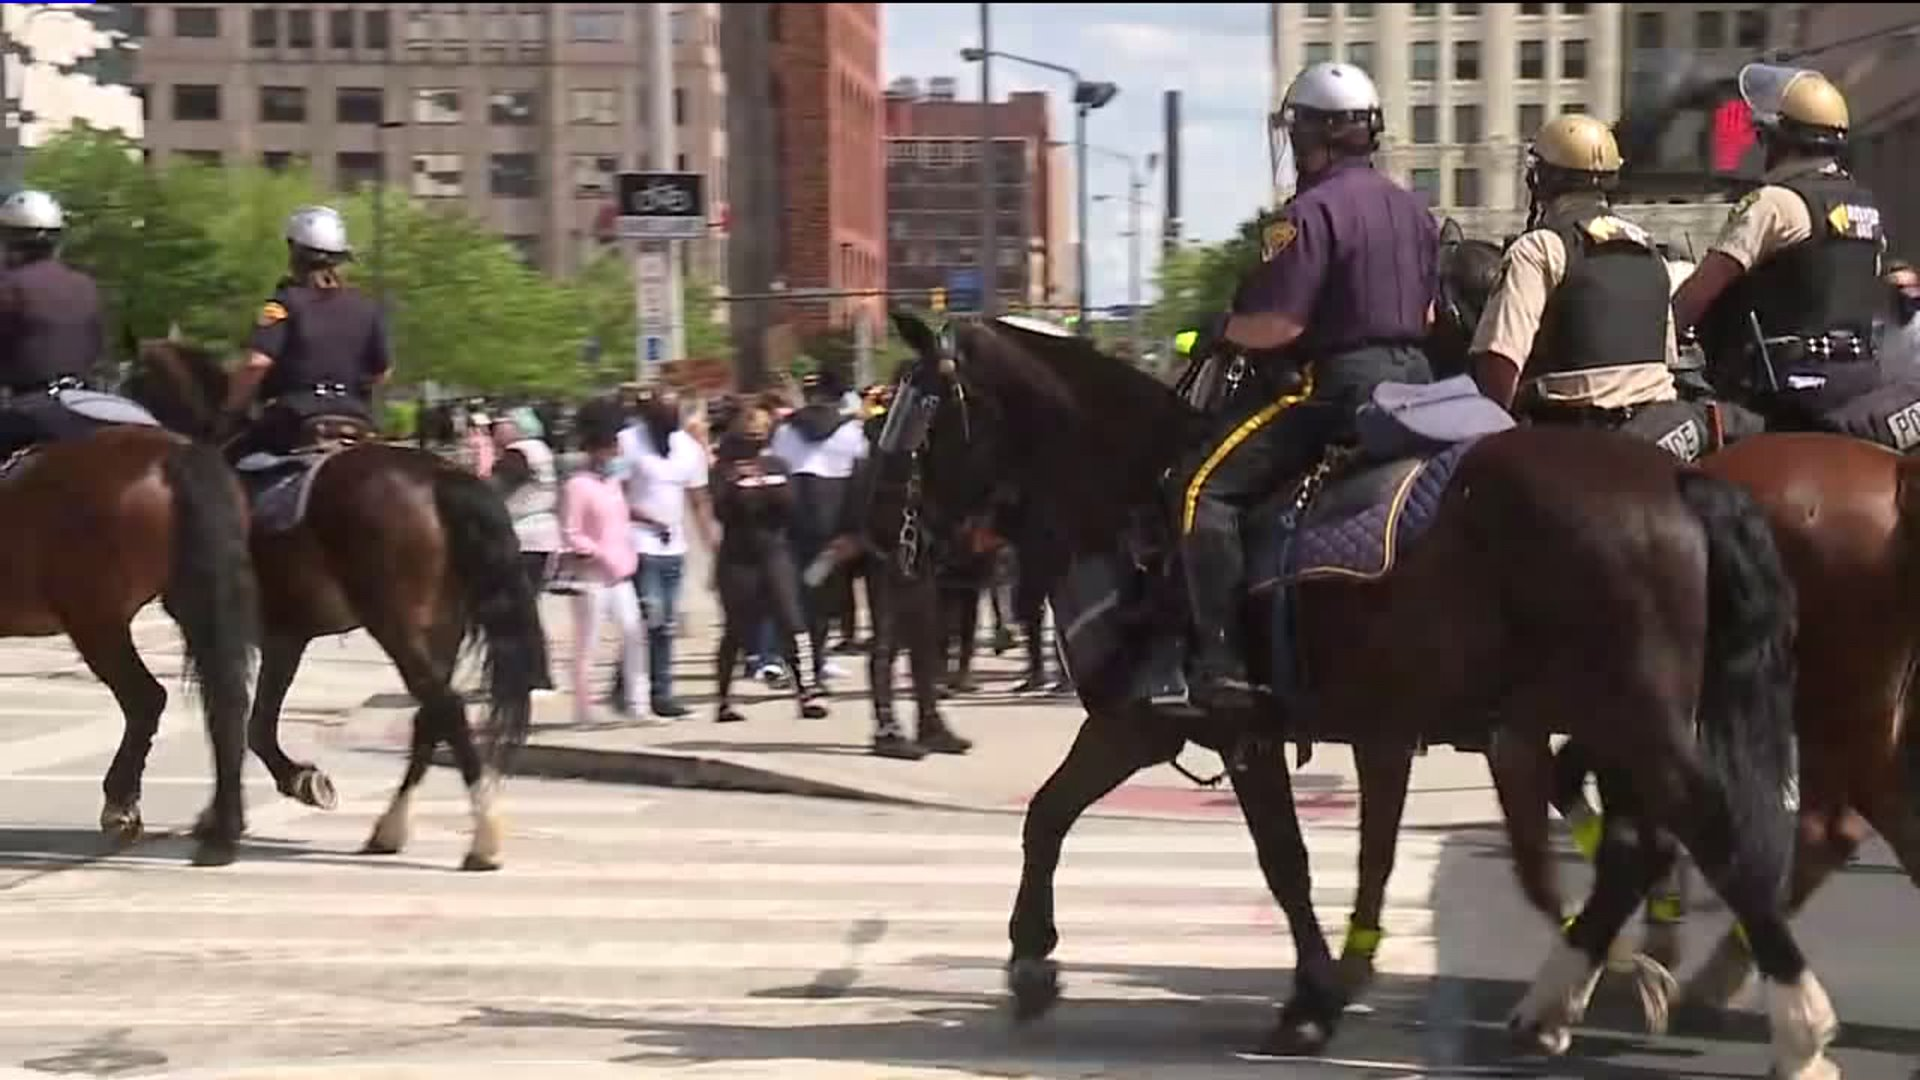 Ohio Animal Hospital Offers Free Care For Police Horses Injured During Weekend Protests